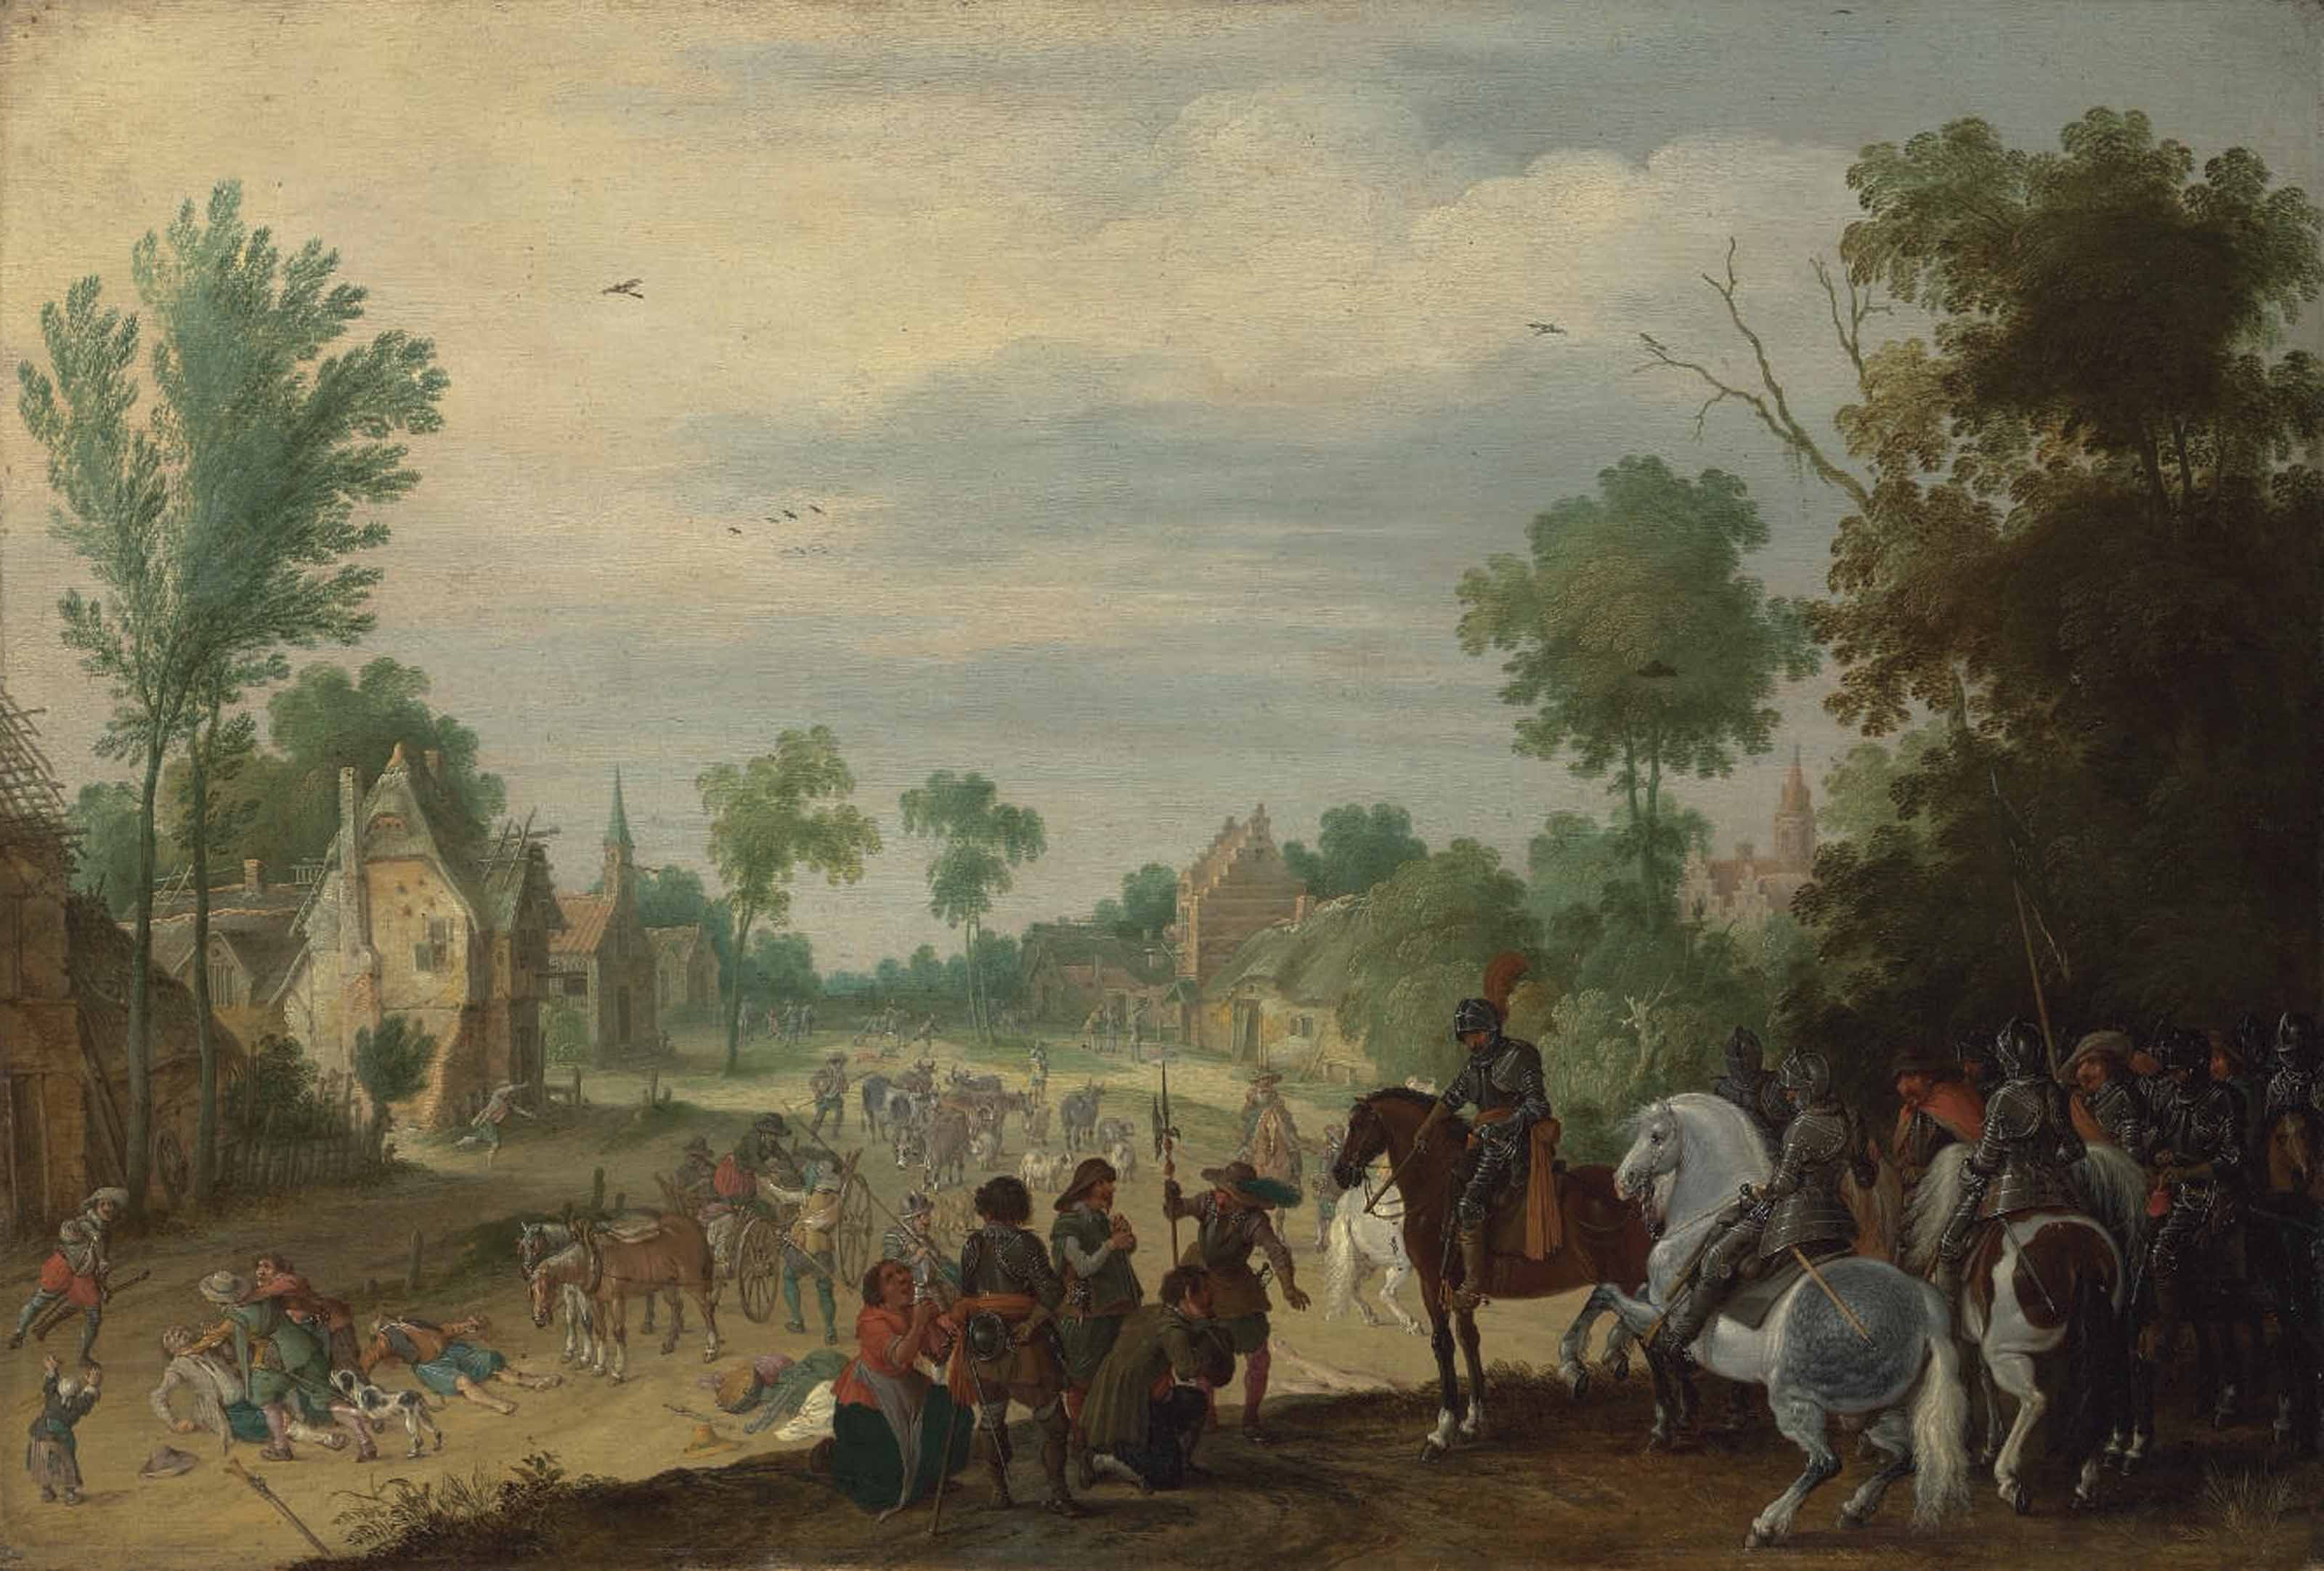 Soldiers on horseback plundering a village